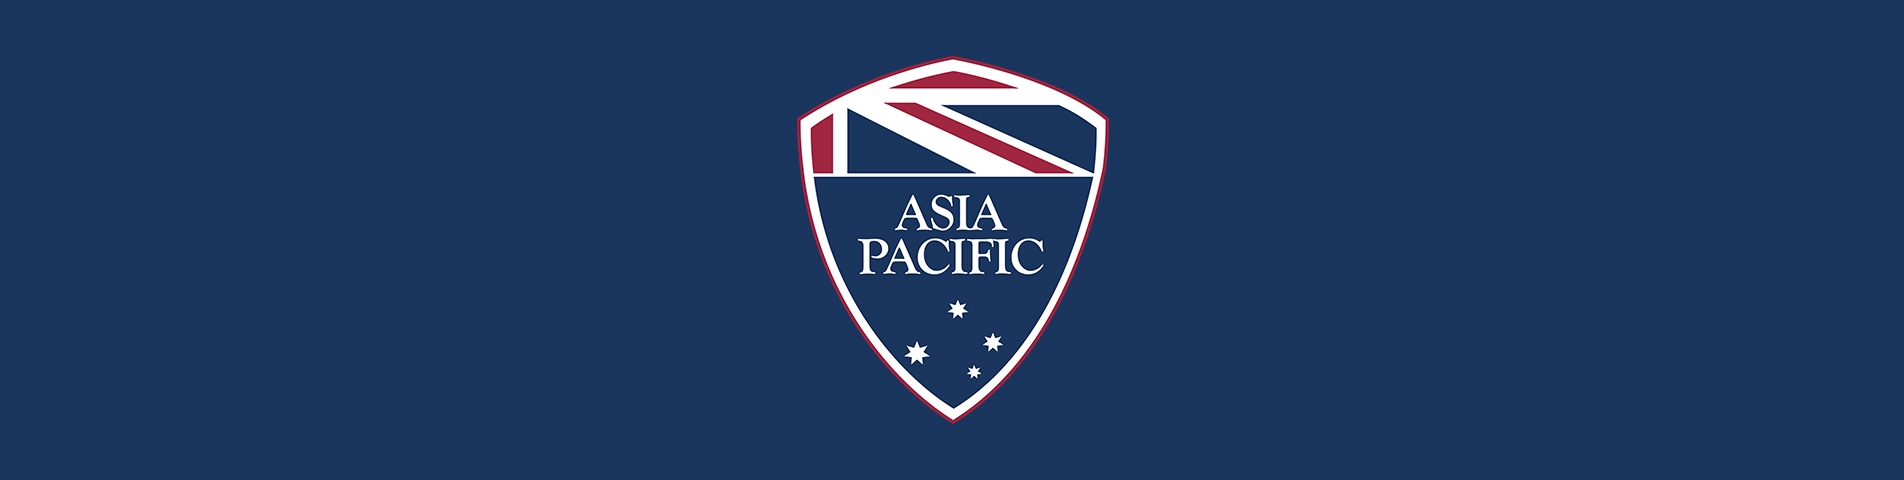 Asia Pacific Group - Education & Migration Service (@asiapacificgroup) Cover Image